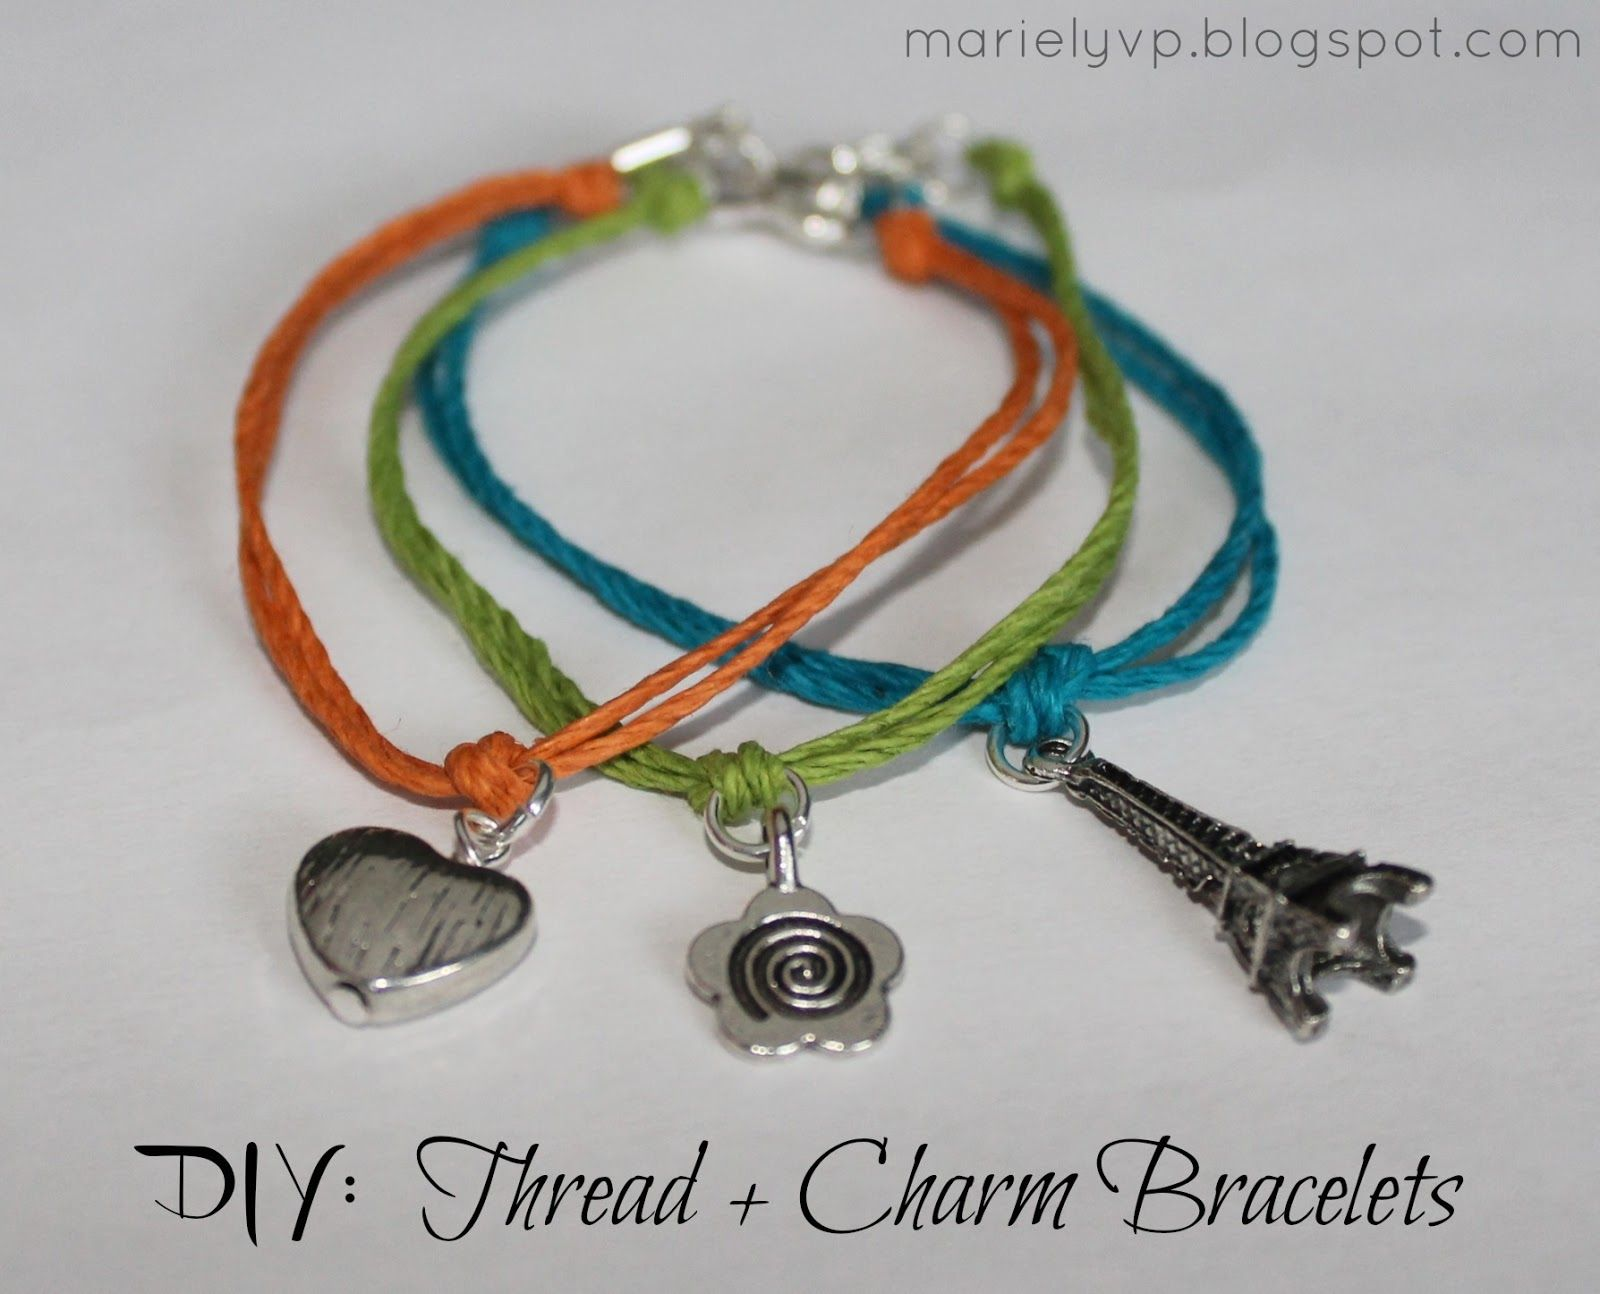 Charm Bracelet - Rain Walking 85 by VIDA VIDA